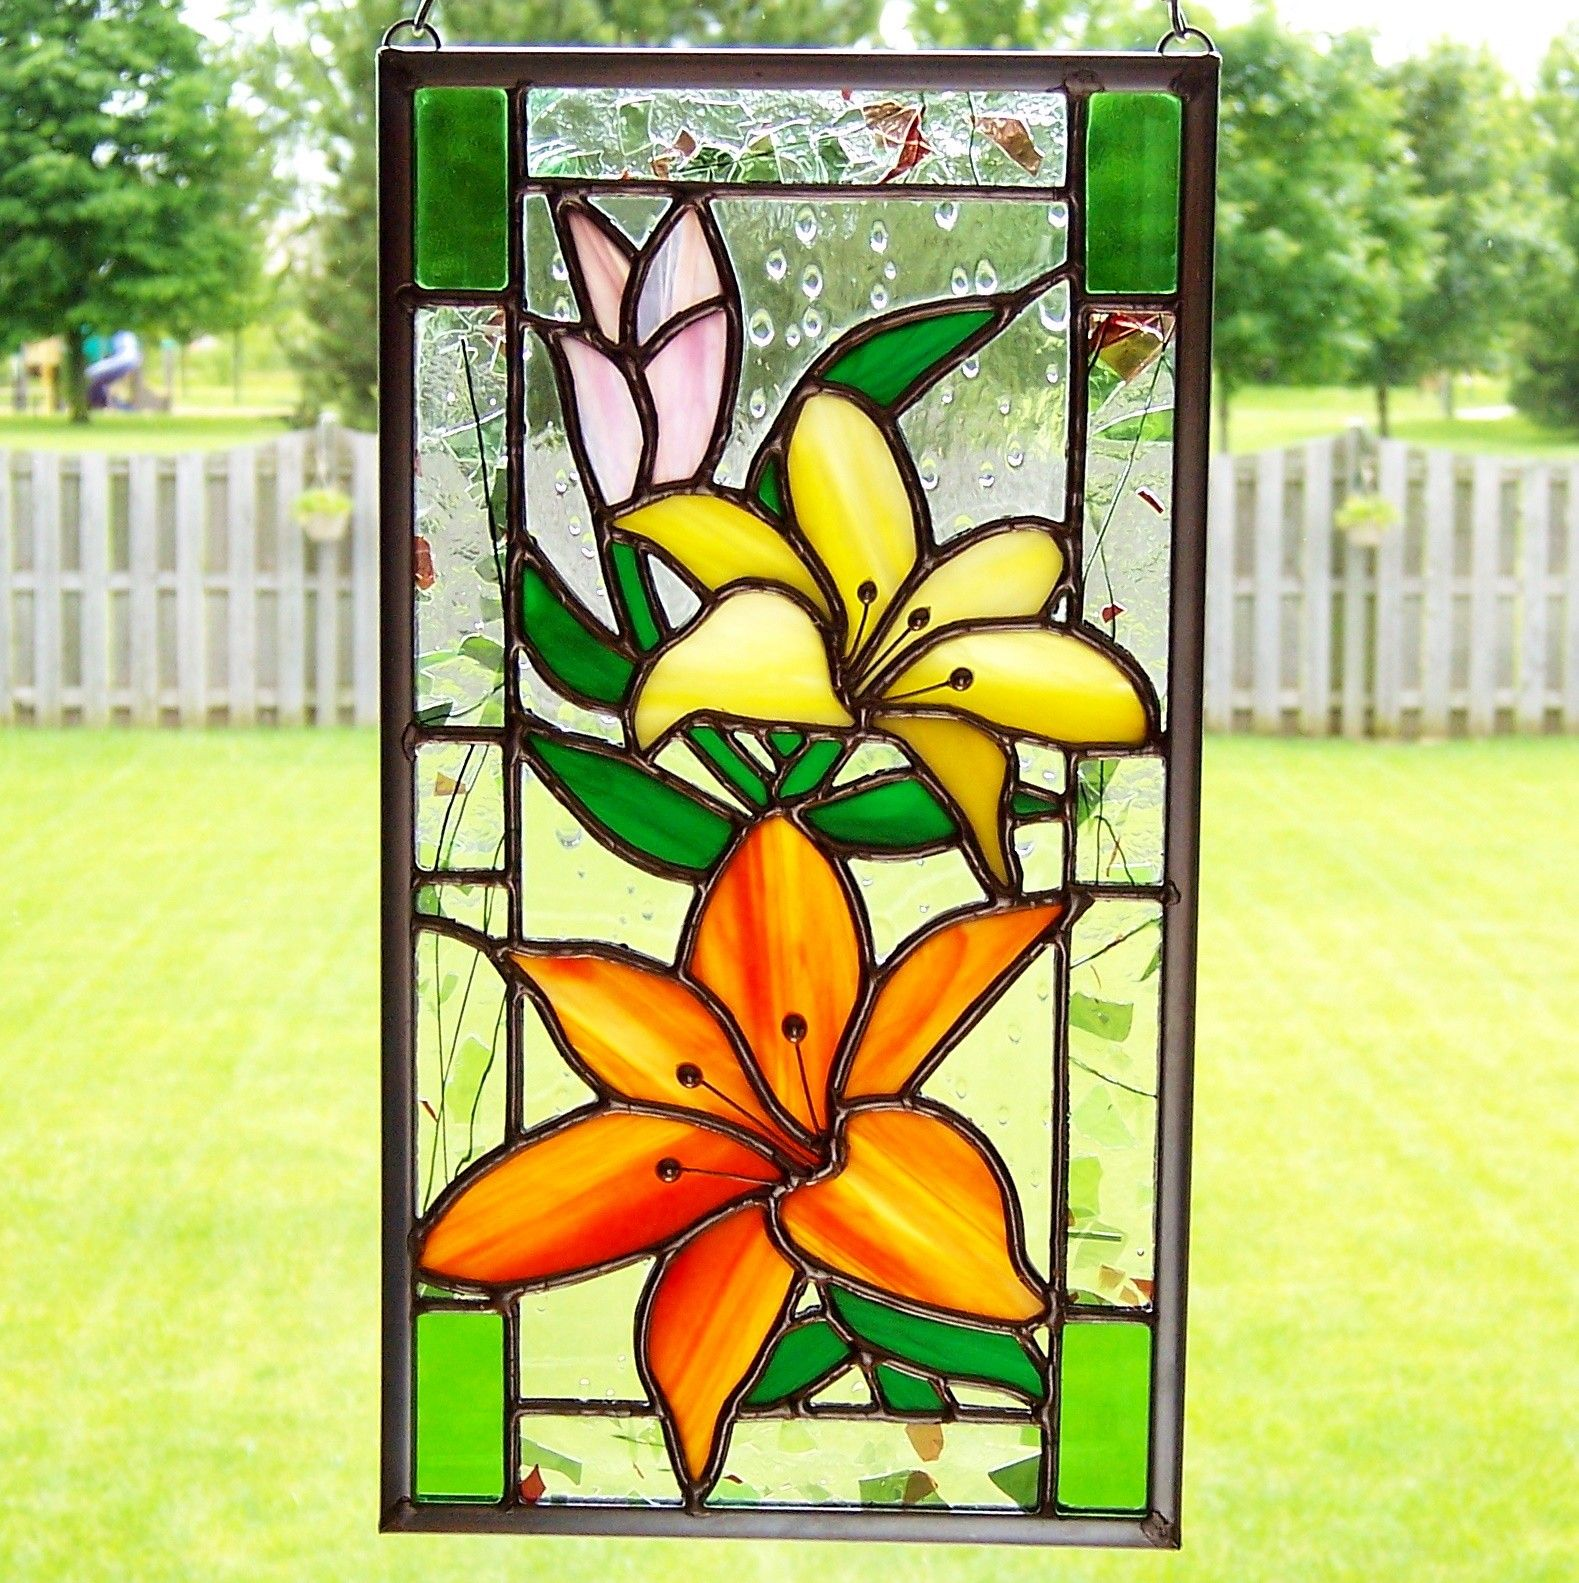 Floral Stained Glass images - Google Search | stained glass ...